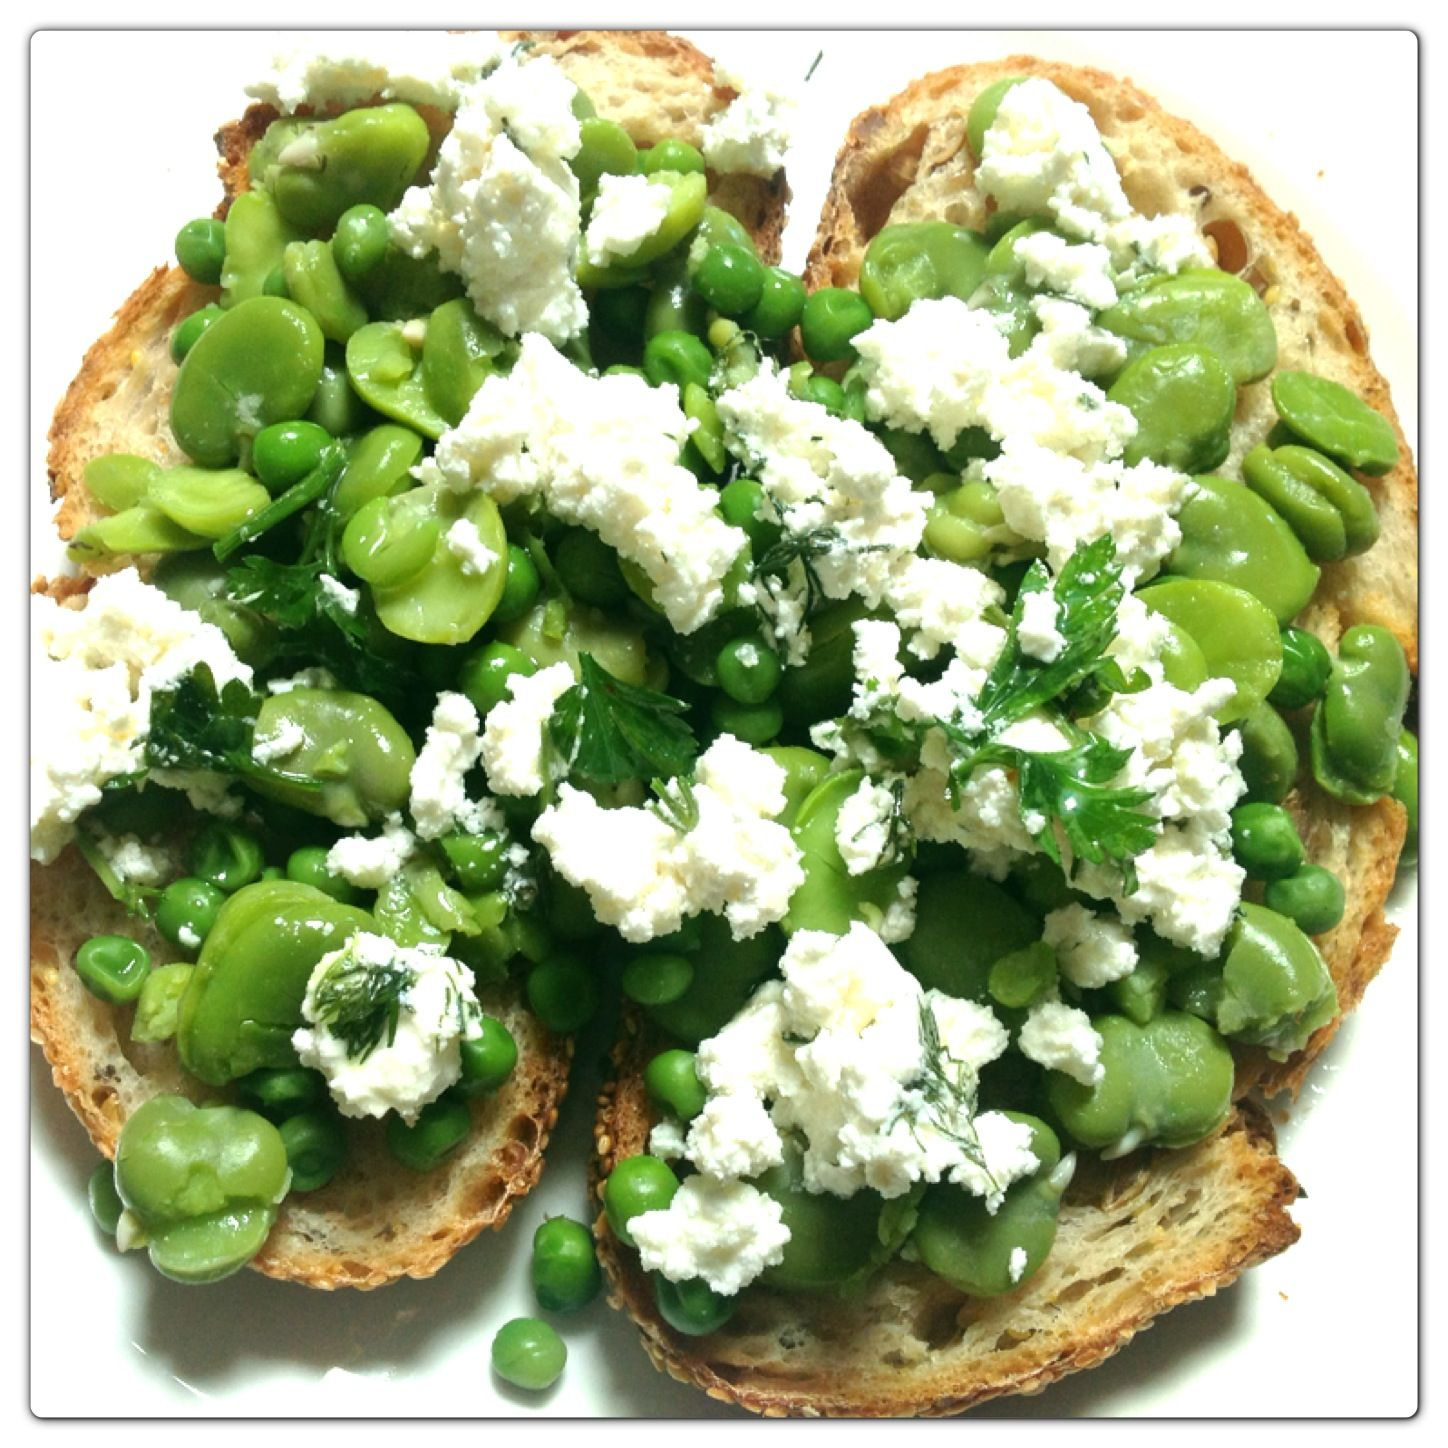 Pantry challenge: used up frozen broad beans, peas and feta